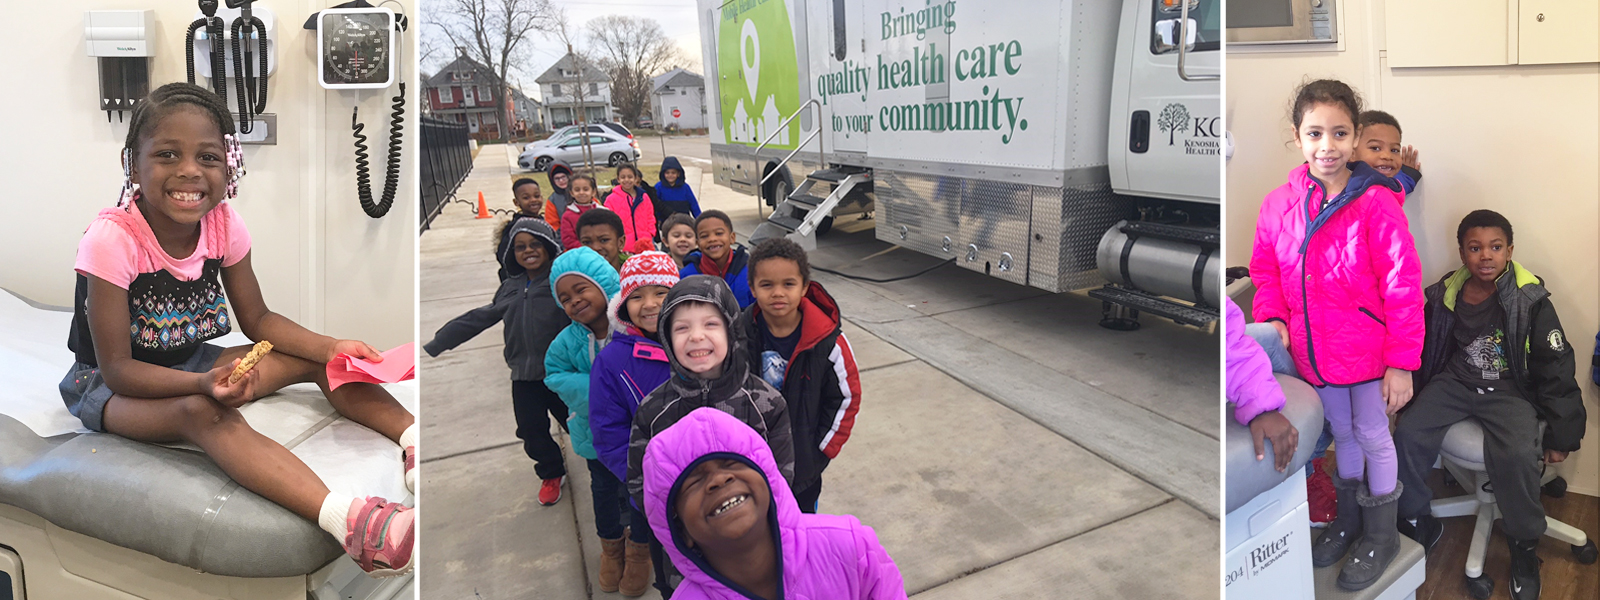 KCHC Neighborhood Clinic in Racine